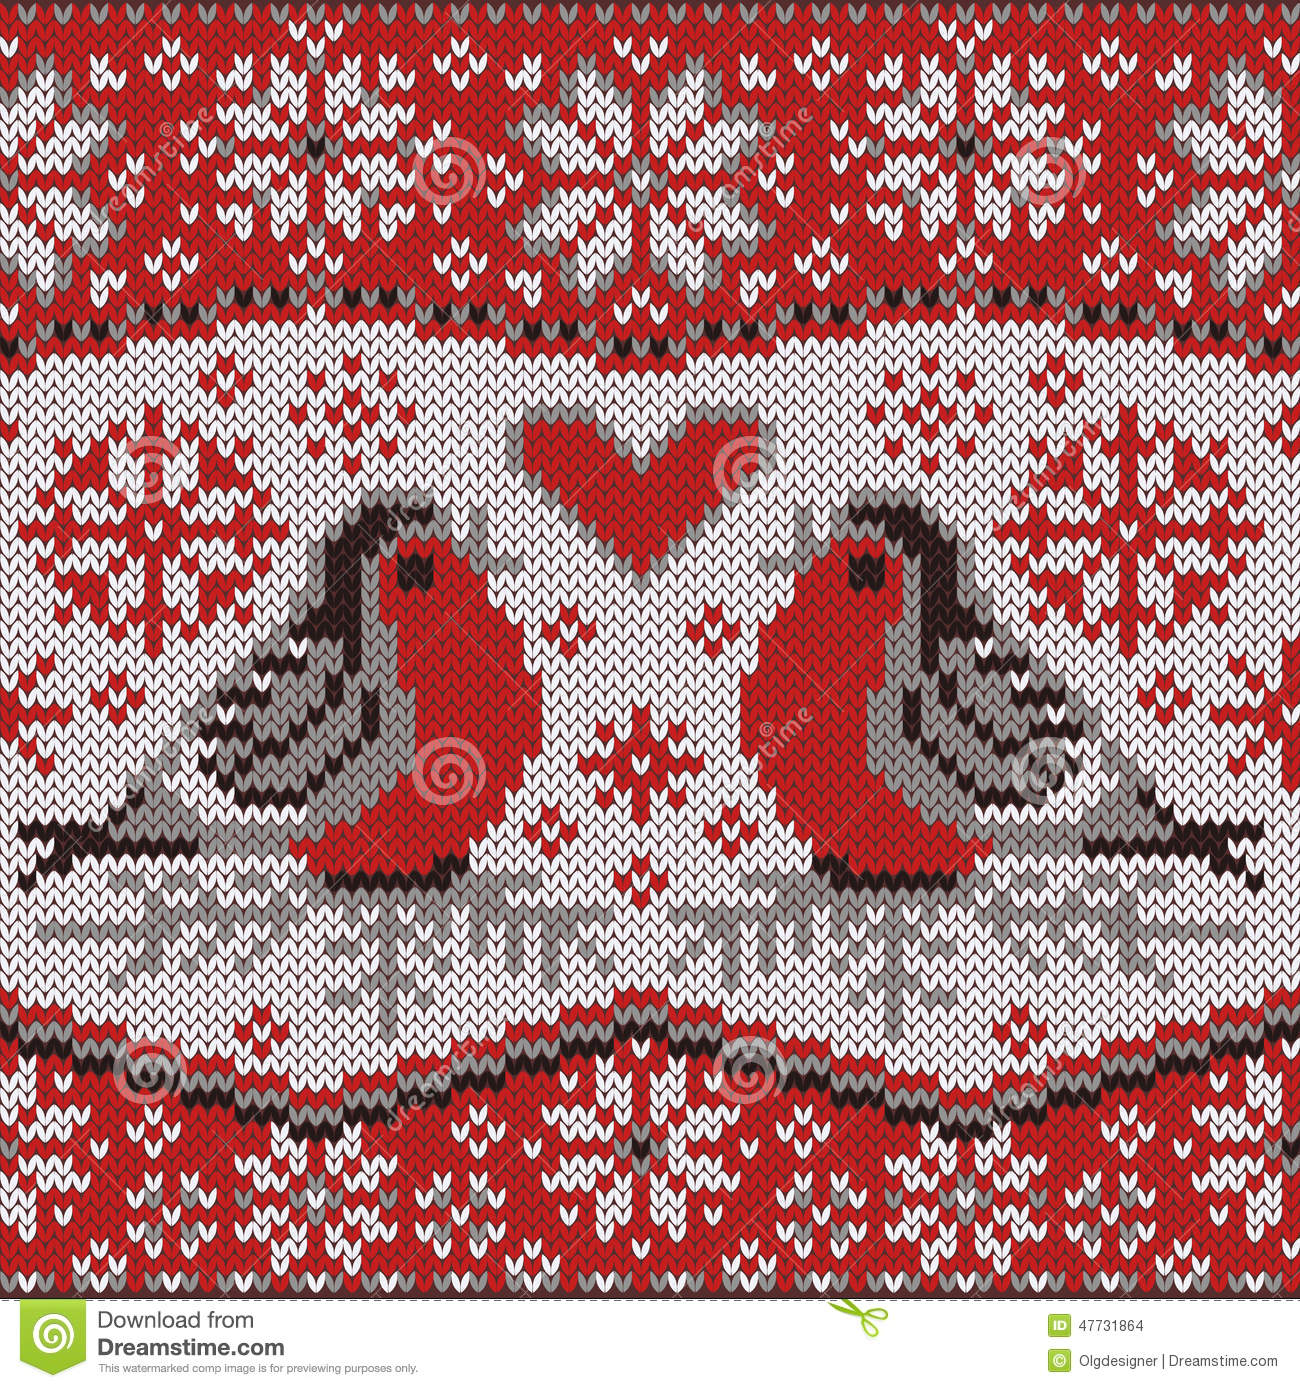 Free Nordic Knitting Patterns : Greeting Card With Bullfinches, Nordic Knitted Pattern Stock Vector - Image: ...